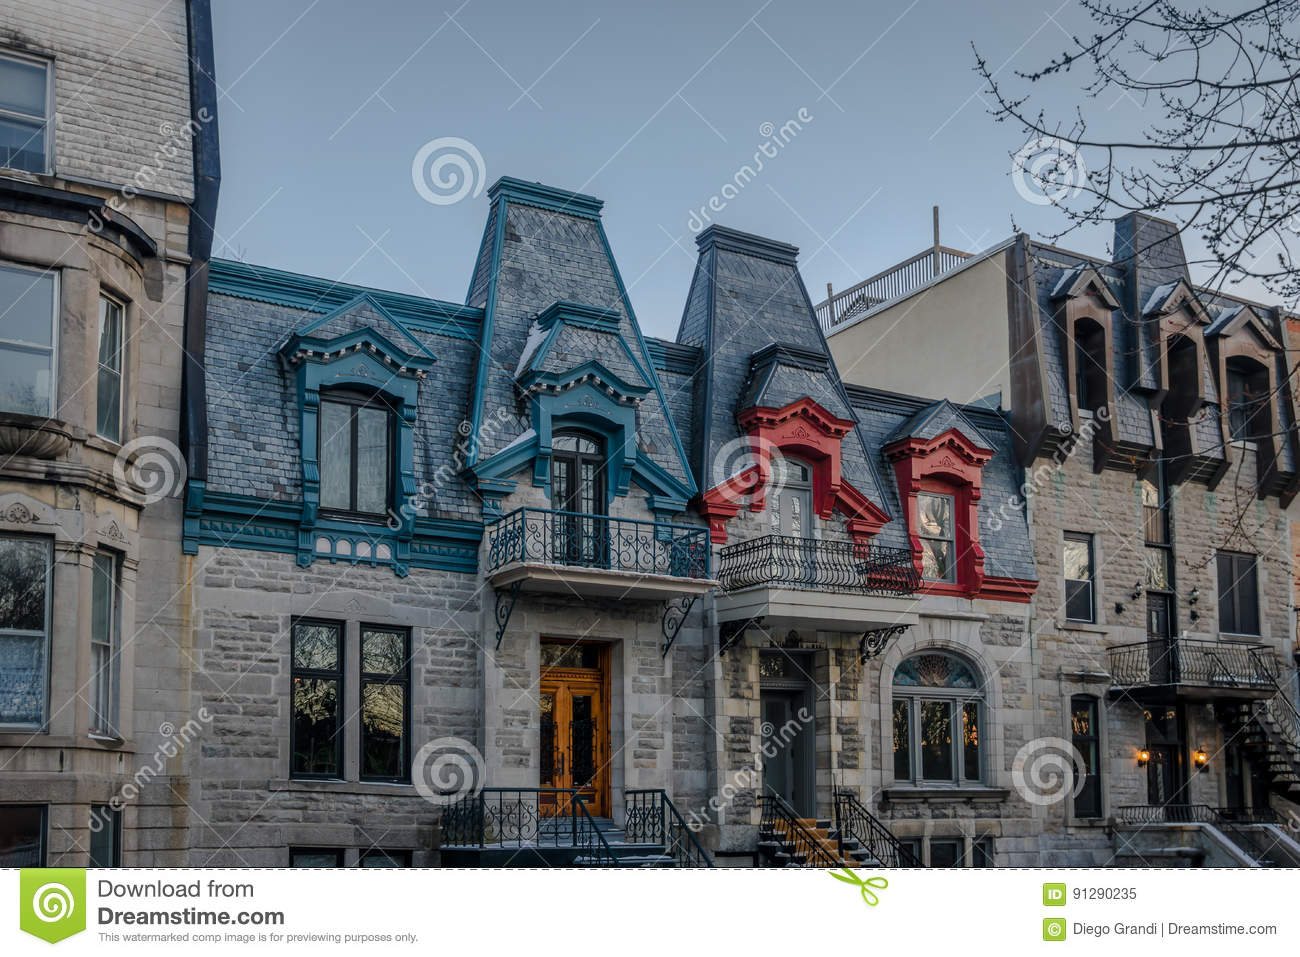 Quebec Montreal Colorful Victorian Houses In Square Saint Louis Montreal Quebec